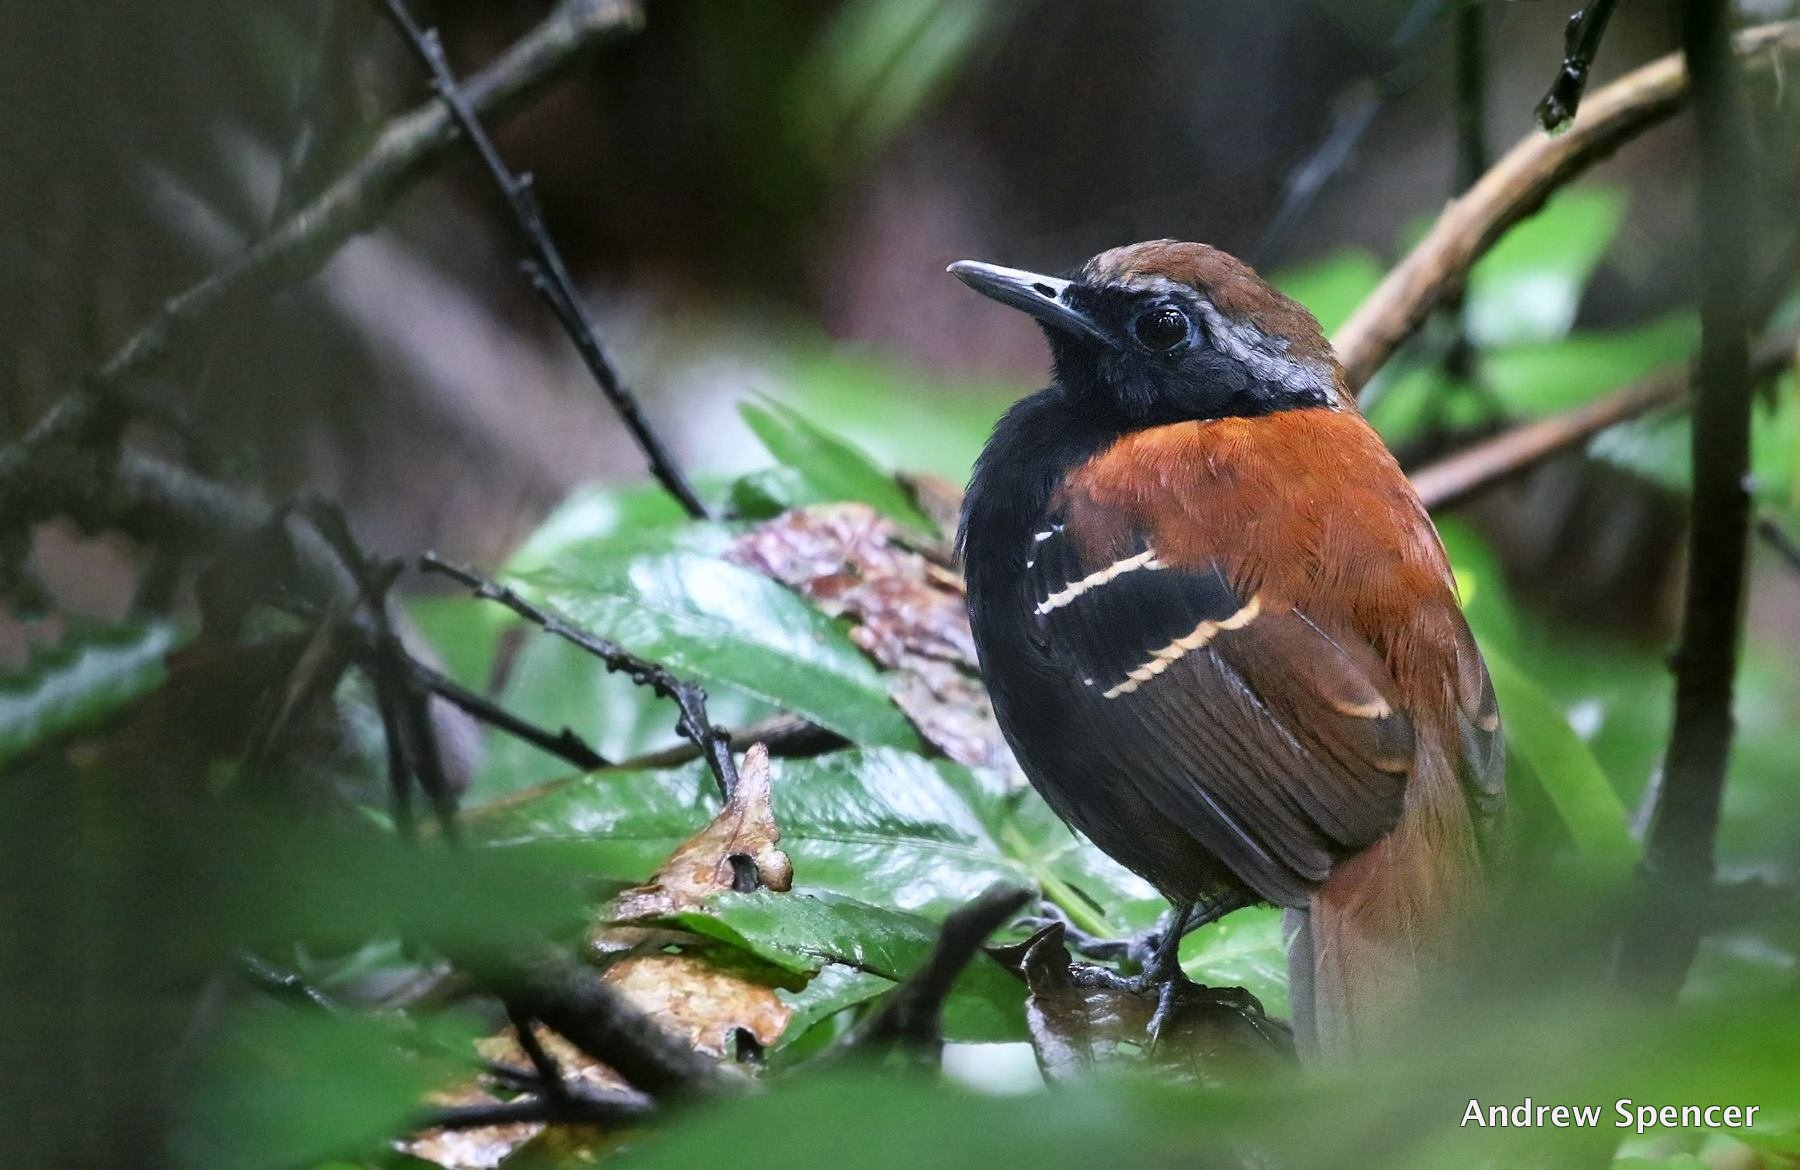 New Antbird from Plataforma, Peru. Photo: Andrew Spencer